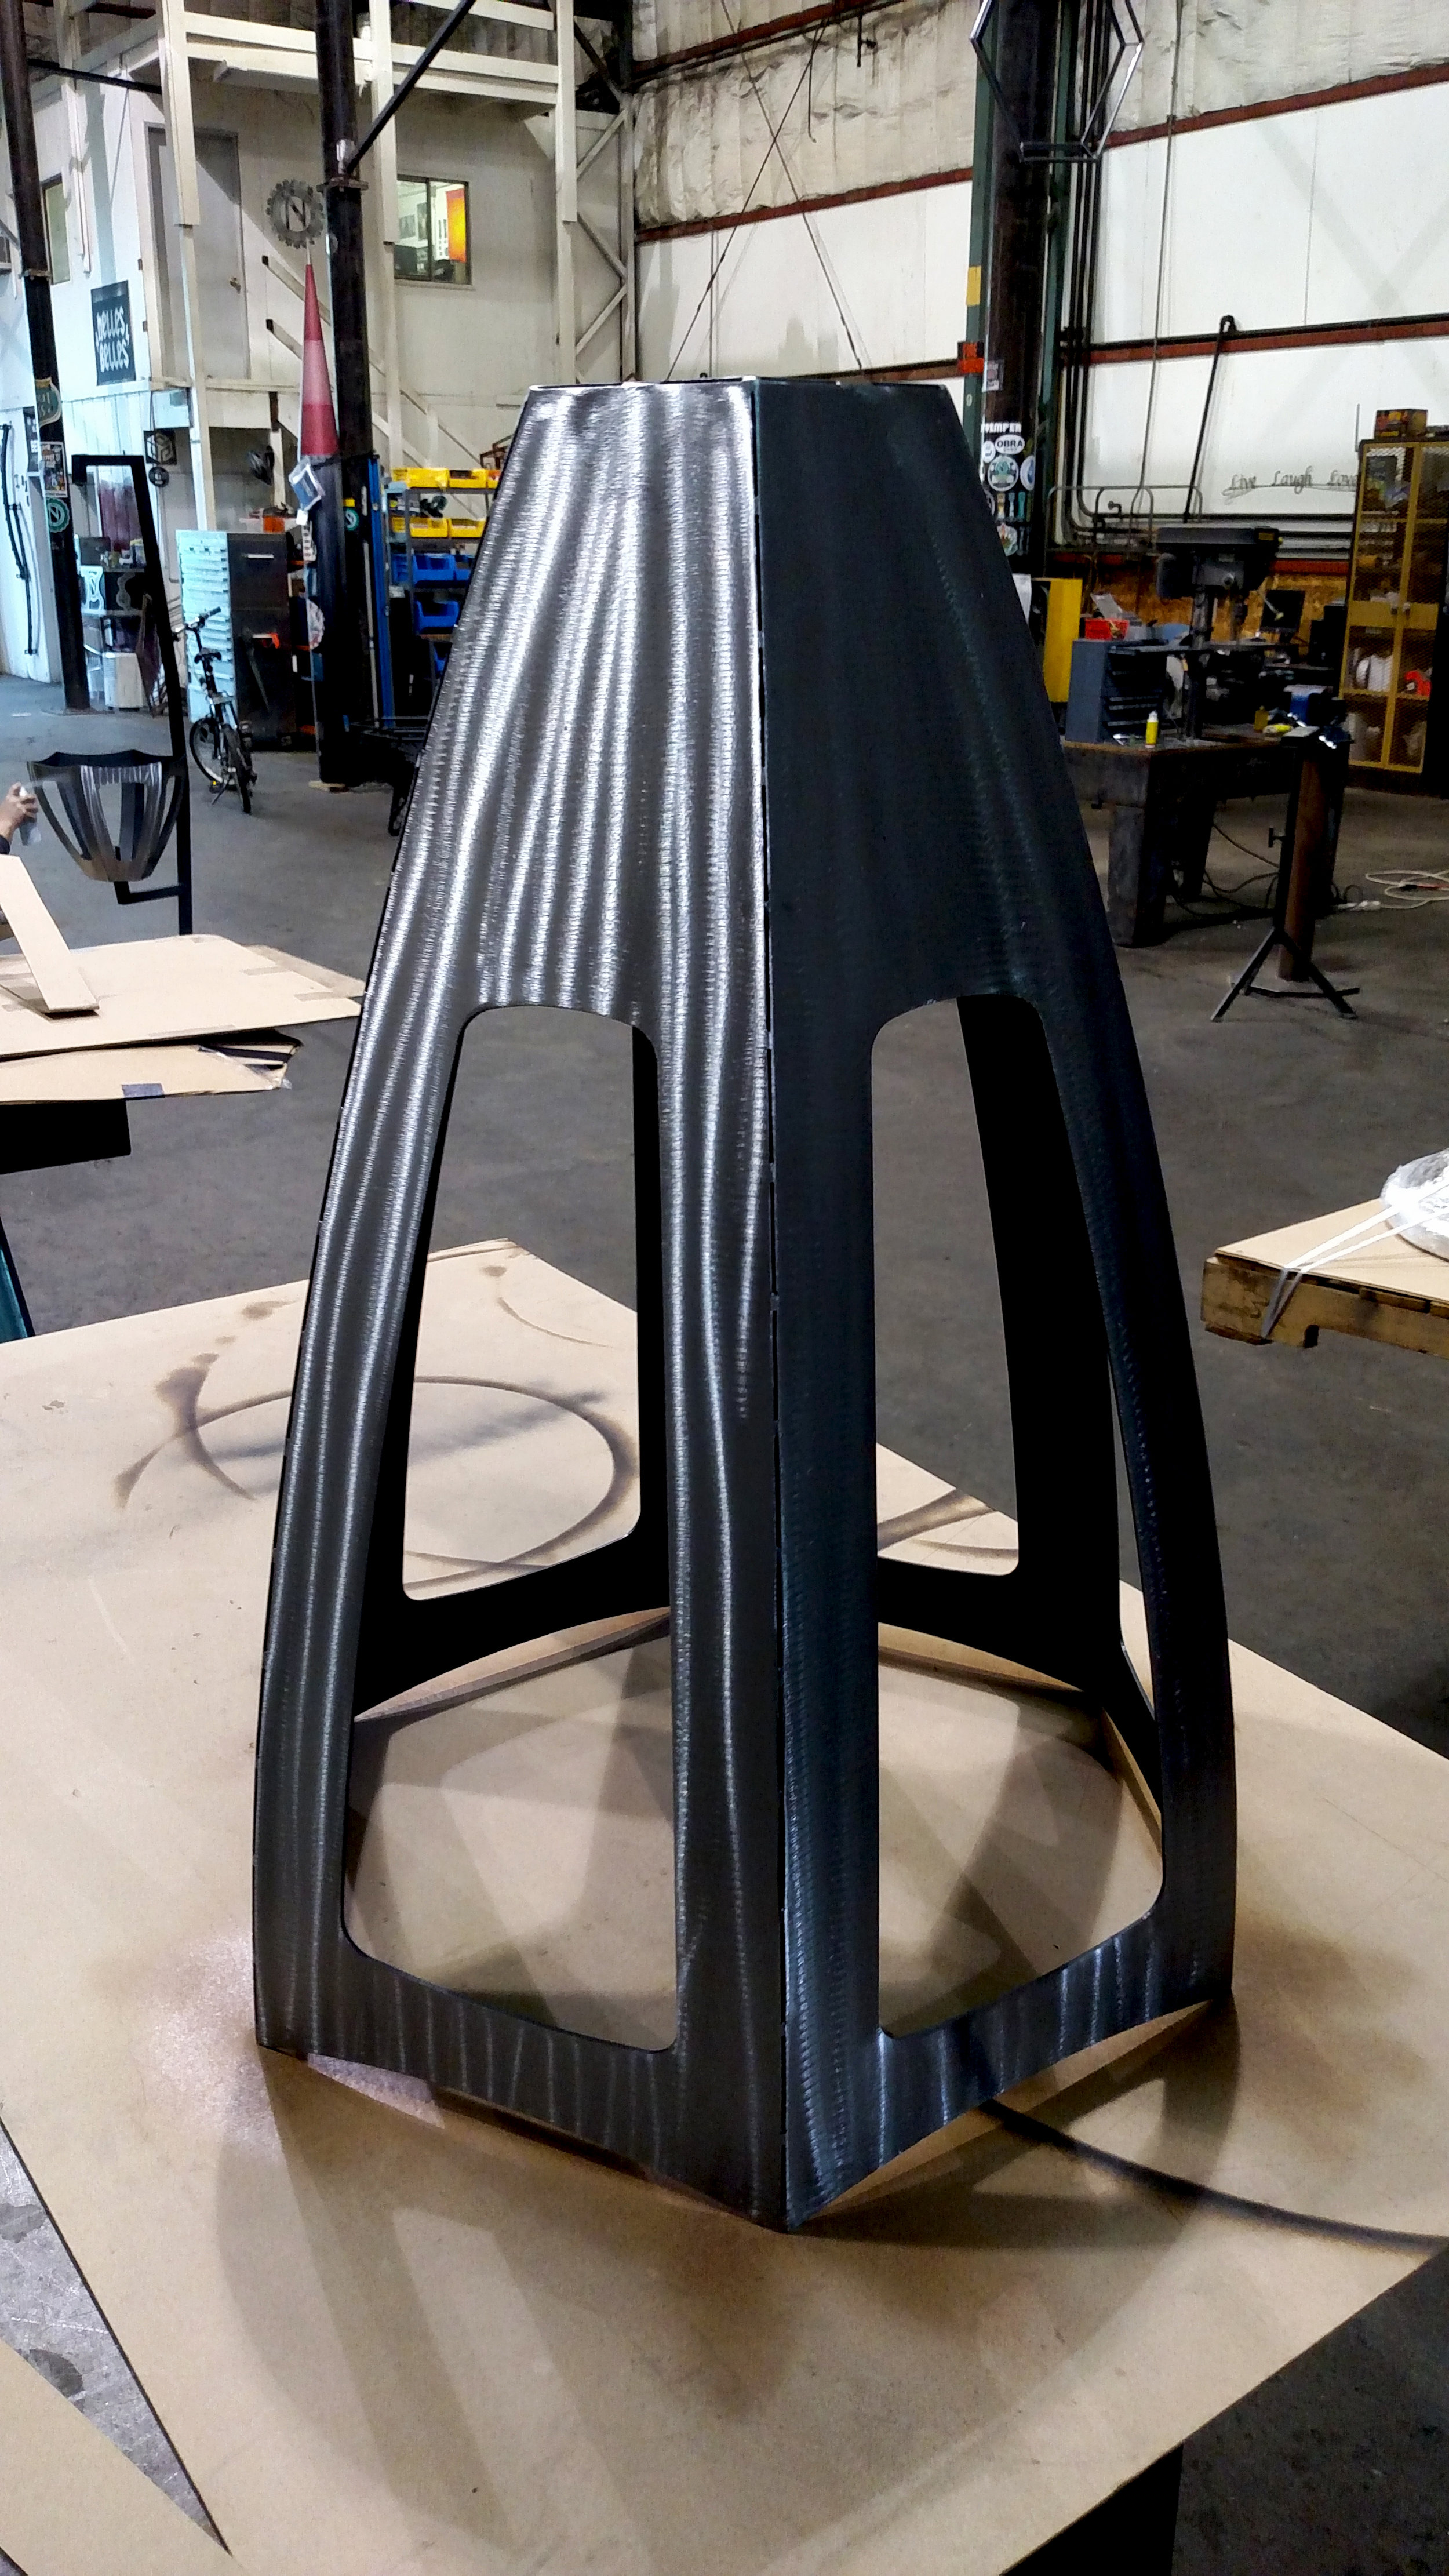 Fabrication of Ninkasi Brewing Sculpture